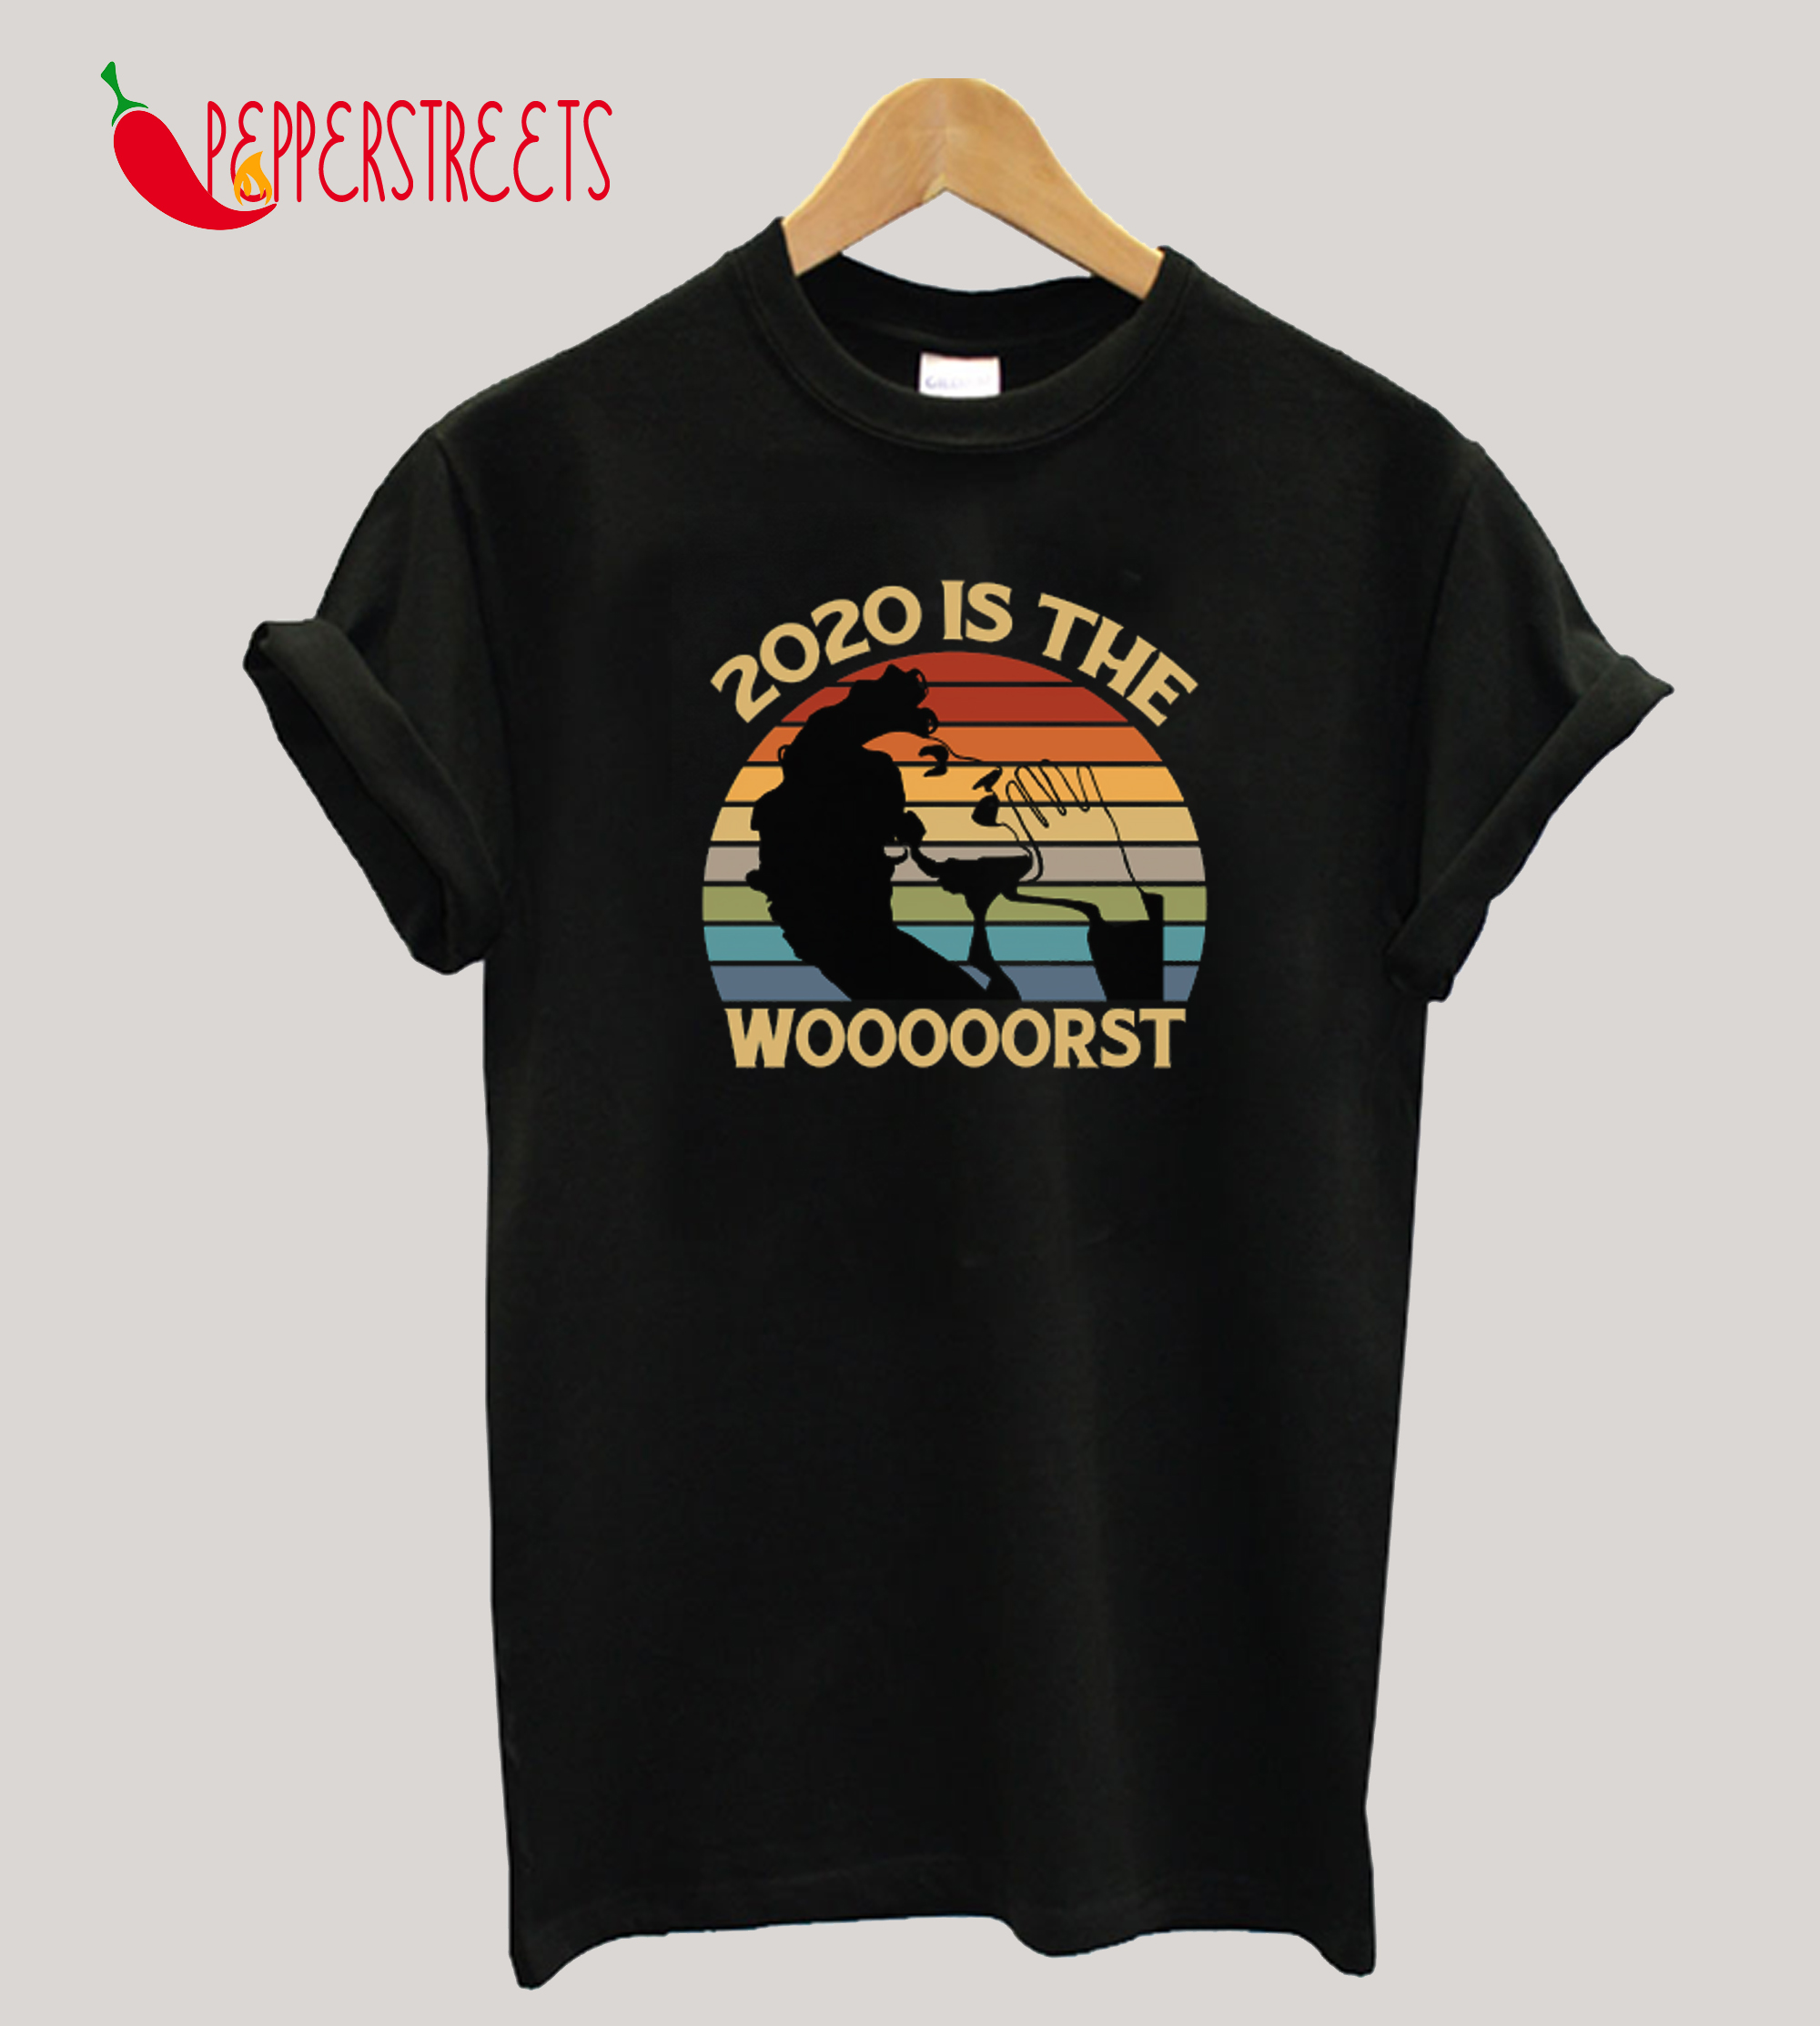 2020 Is The Woooorst T-Shirt